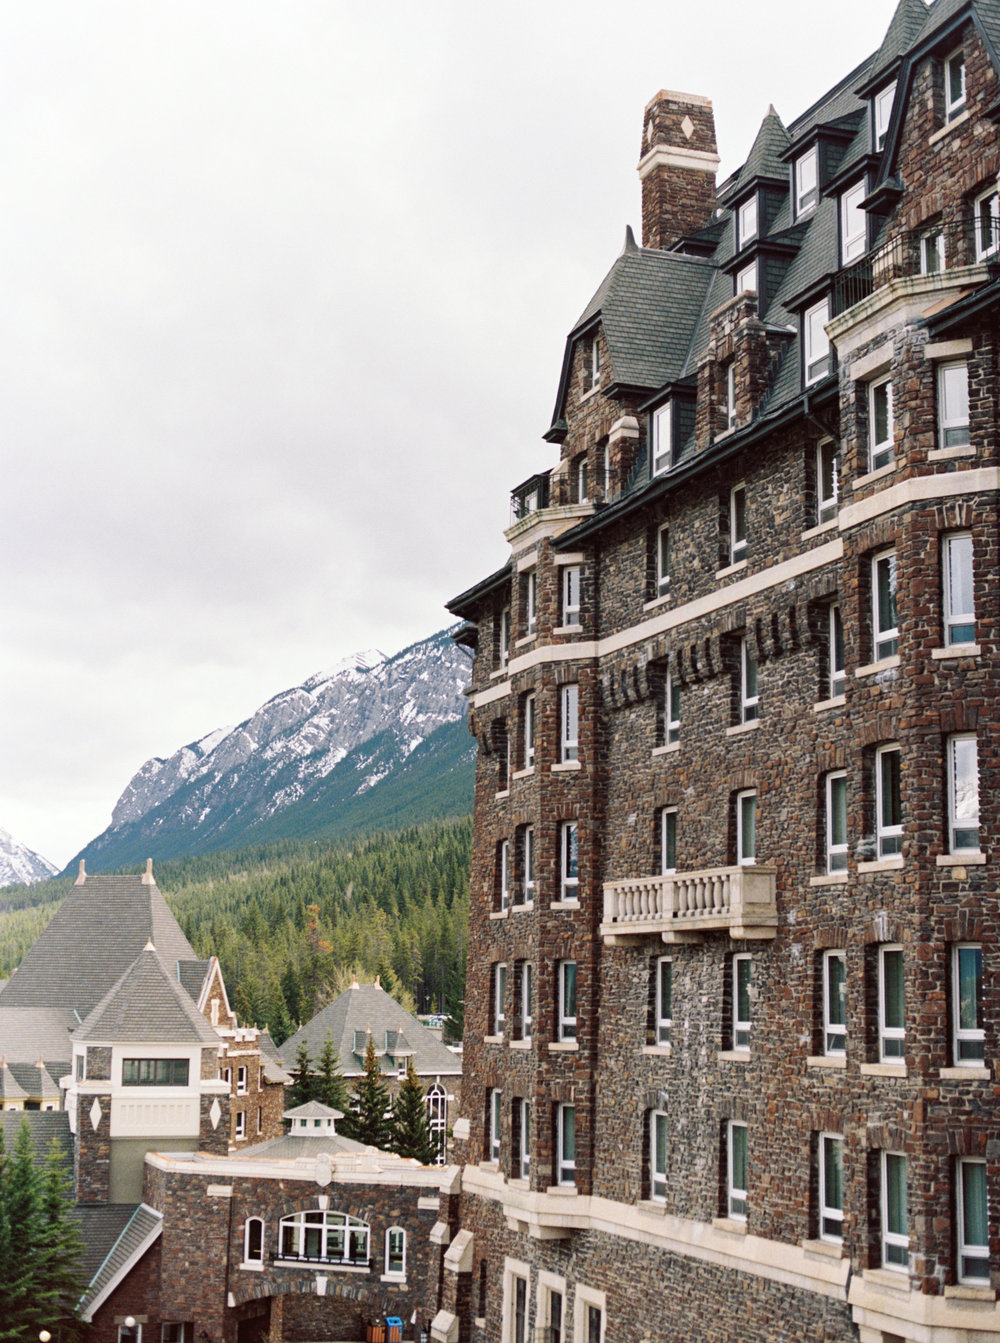 Banff Springs Hotel | Banff Springs Wedding | Banff Wedding | Banff Wedding Planner | Kayla Yestal Photography | Canmore Wedding Planner | Stacey Foley Design